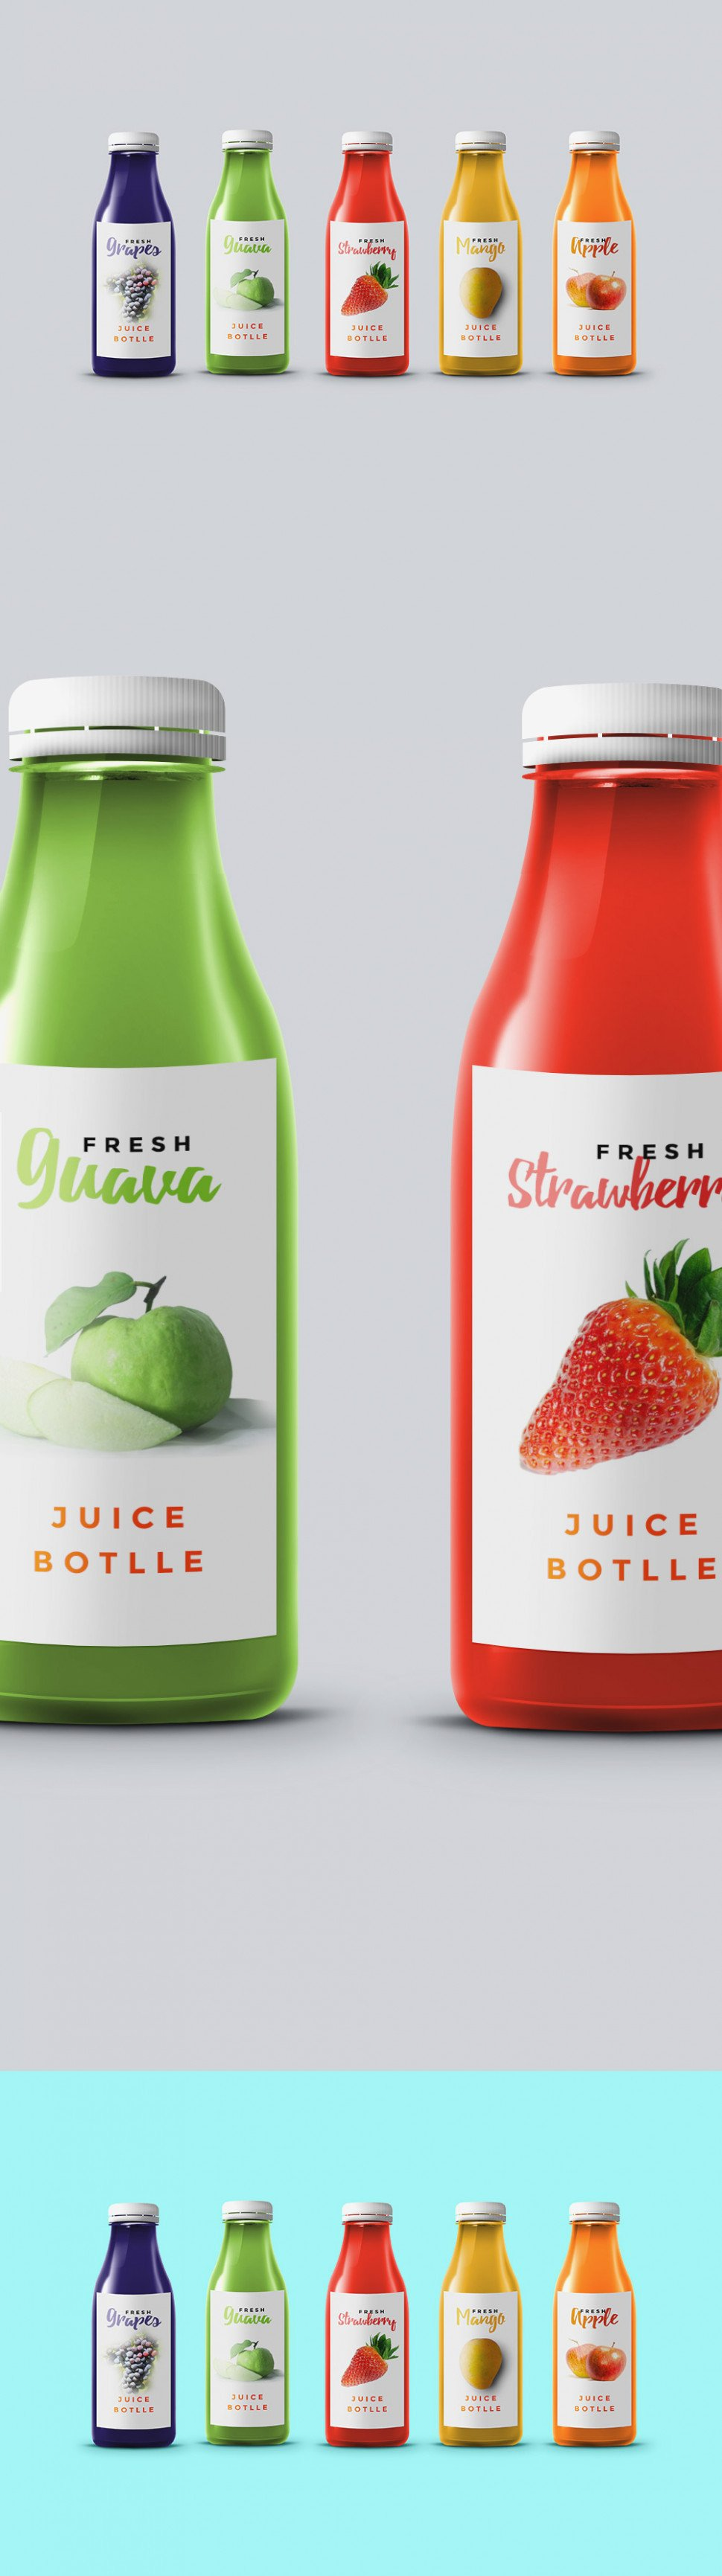 E Juice Bottle Label Template What S so Trendy About E Juice